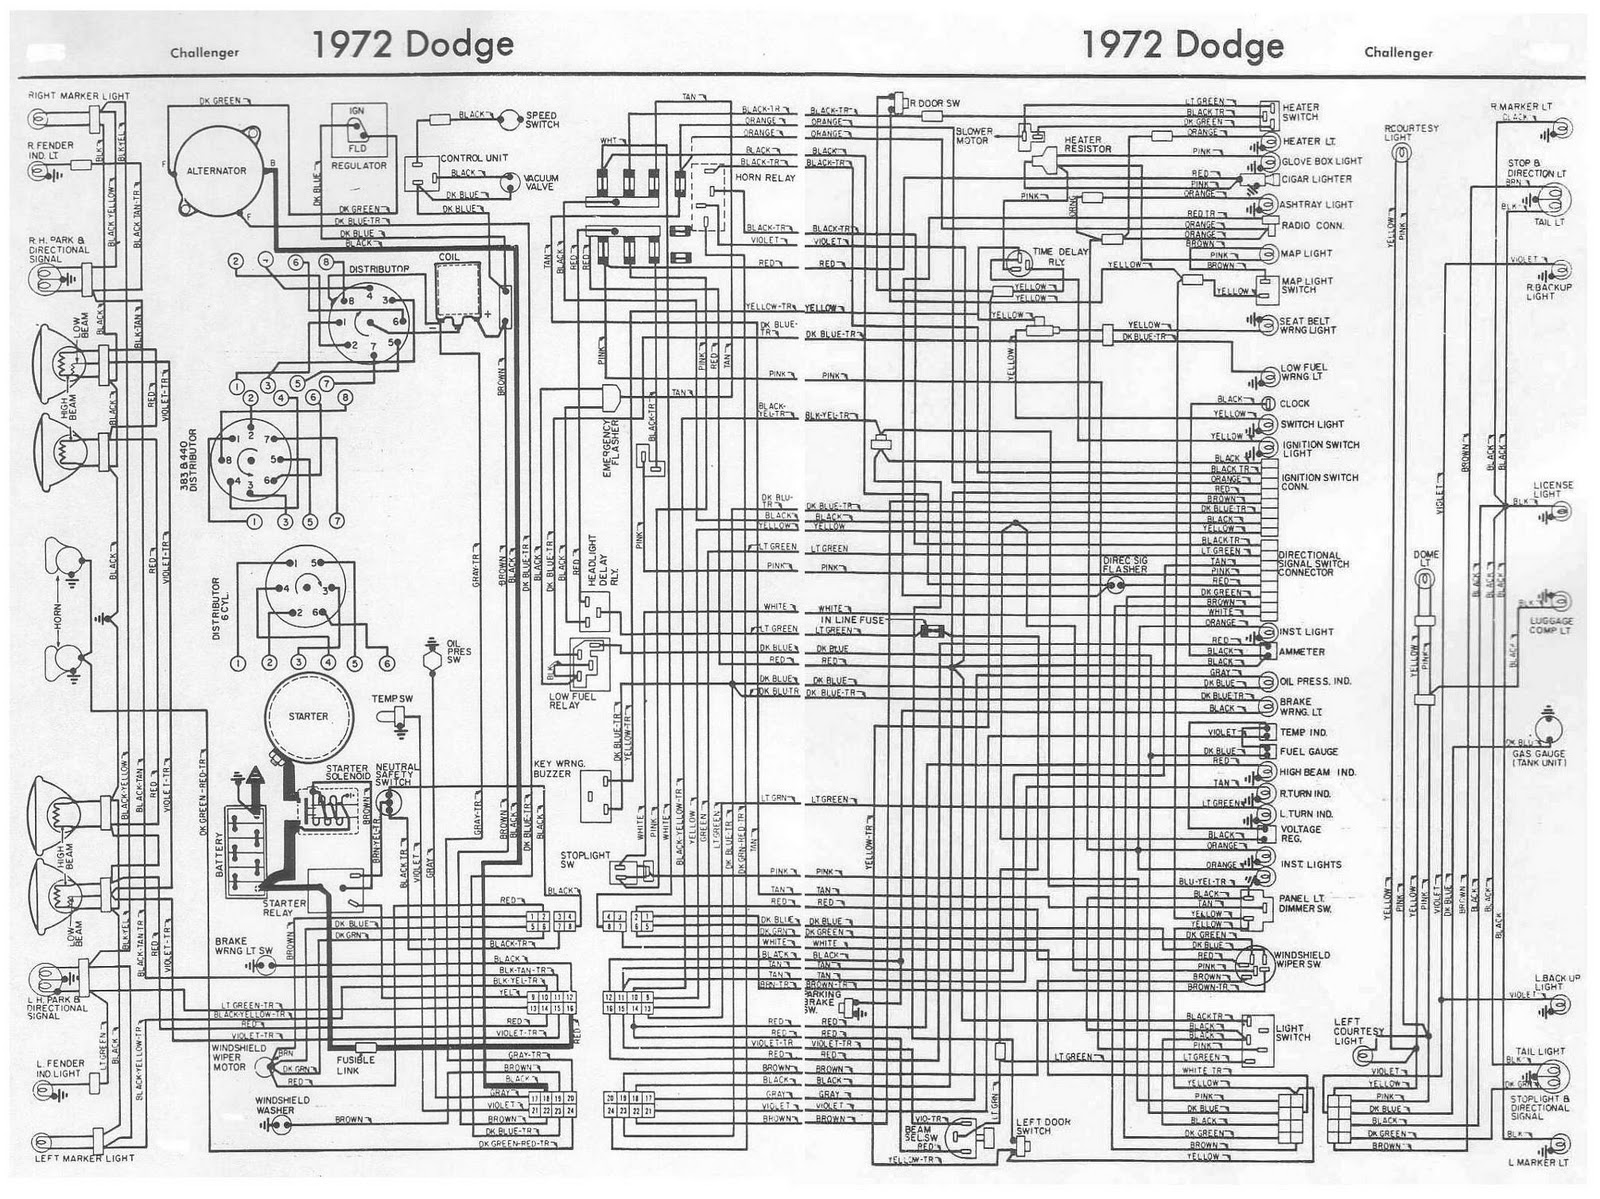 1975 dodge valiant wiring diagram schematic wiring diagram Basic Electrical Schematic Diagrams 1968 dodge dart wiring diagram freebootstrapthemes co \\u20221973 dodge d100 wiring diagram 1975 dodge d100